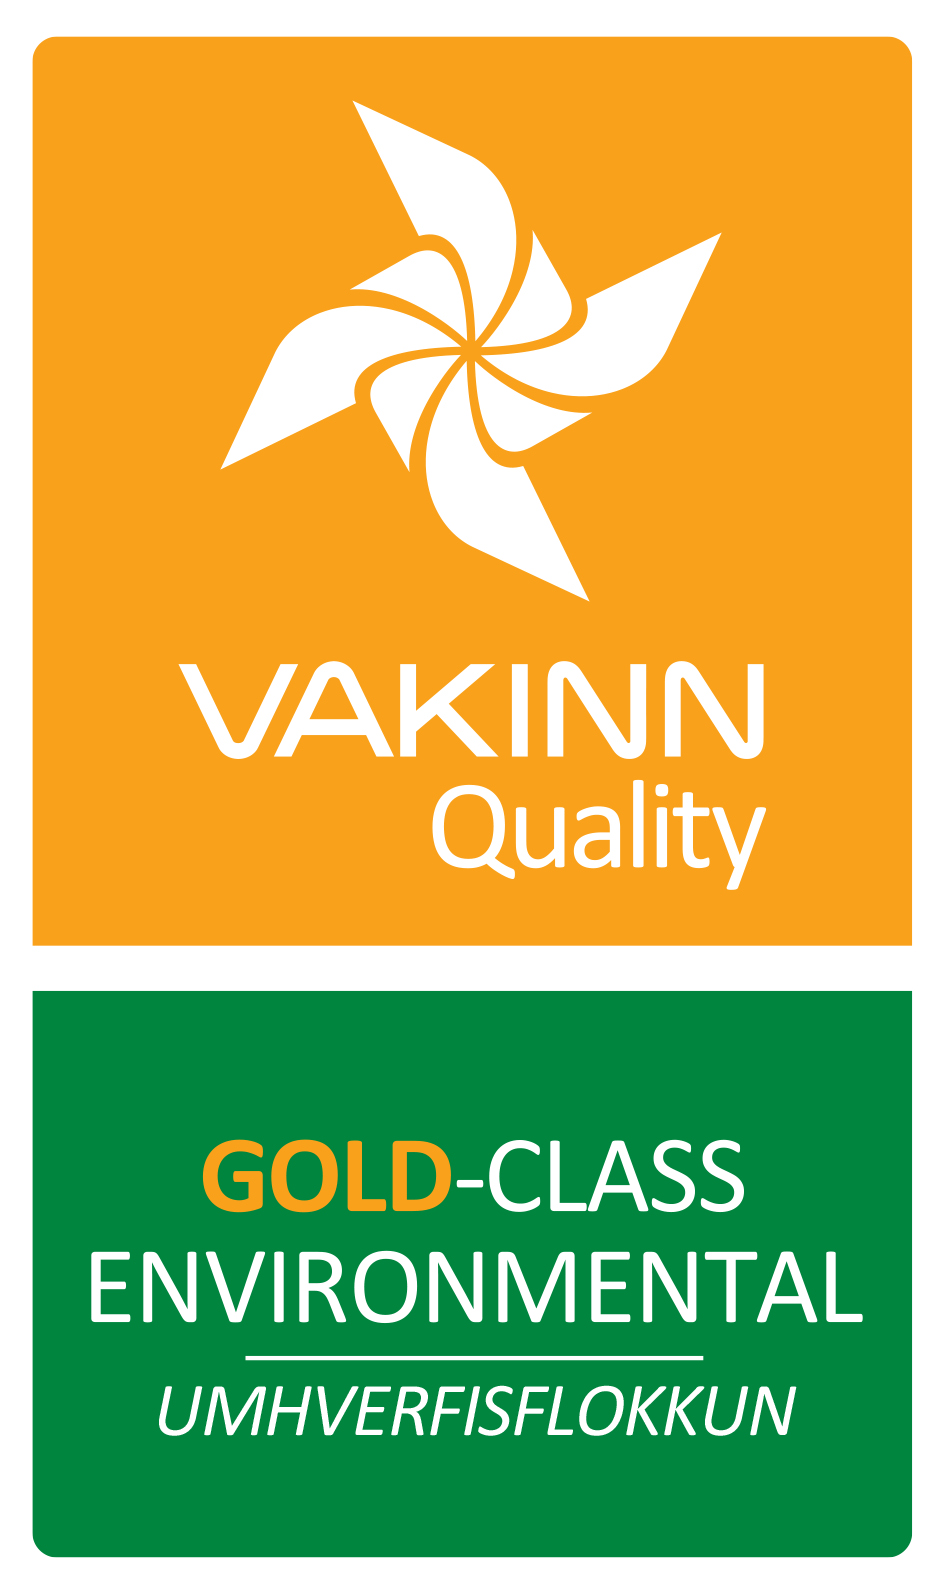 Icelandic Farm Holidays er certified by VAKINN as Environmental Gold-class